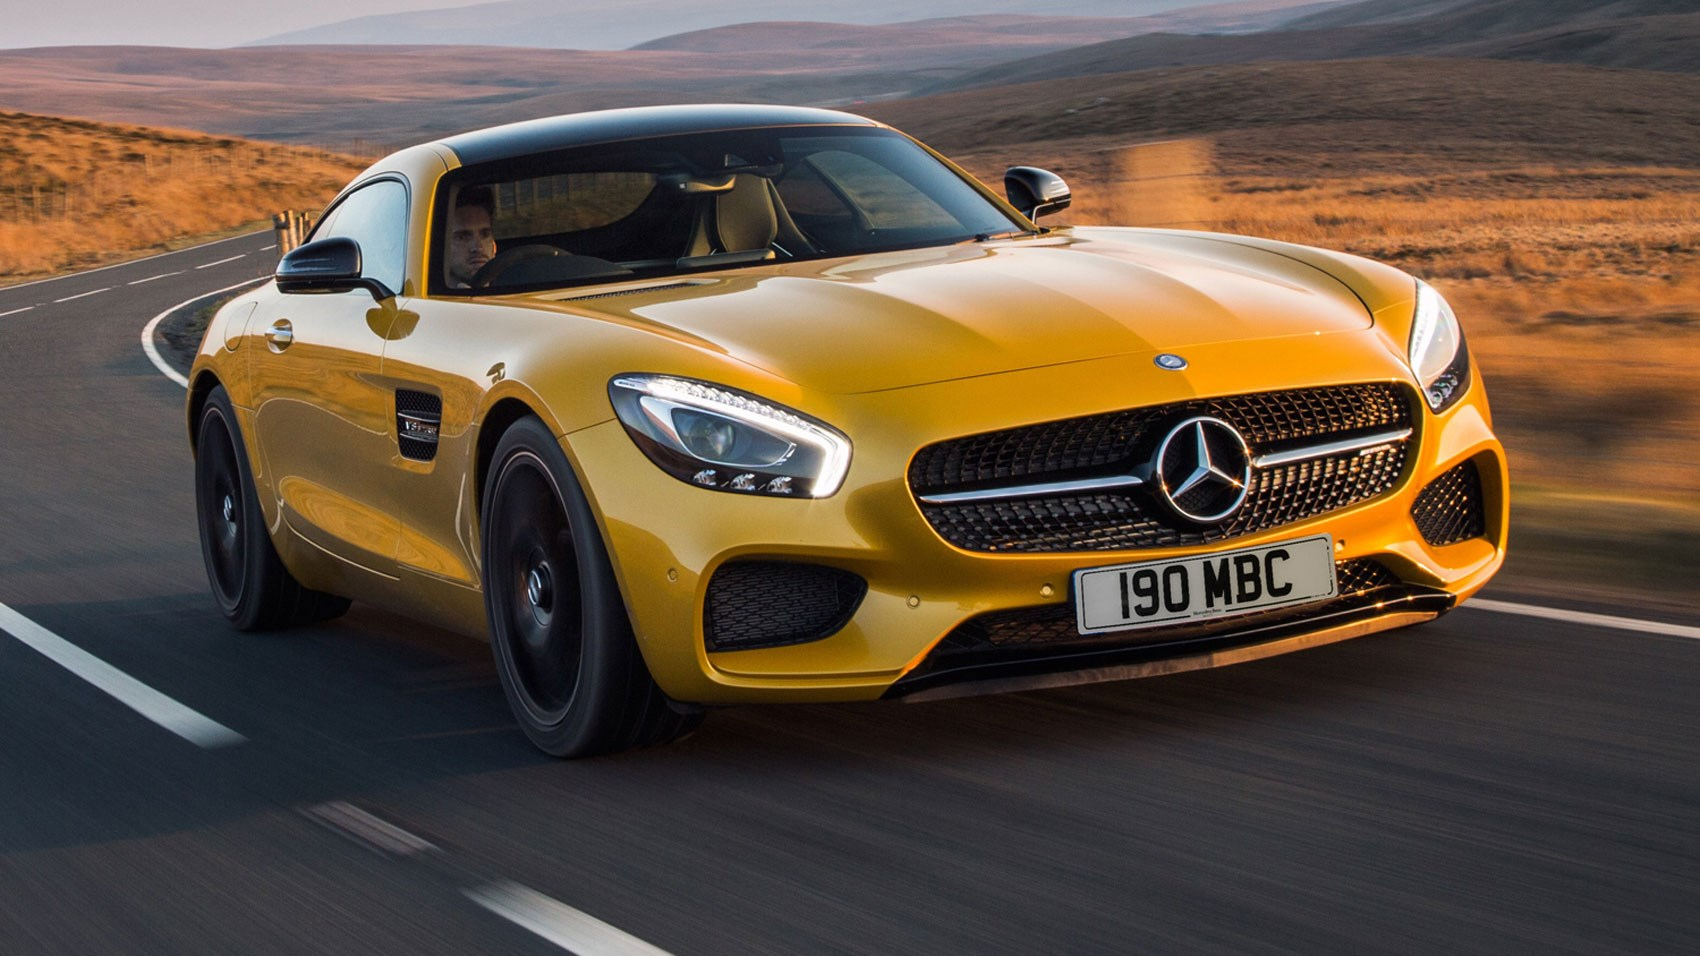 Mercedes amg gts 2015 review car magazine for Mercede benz amg